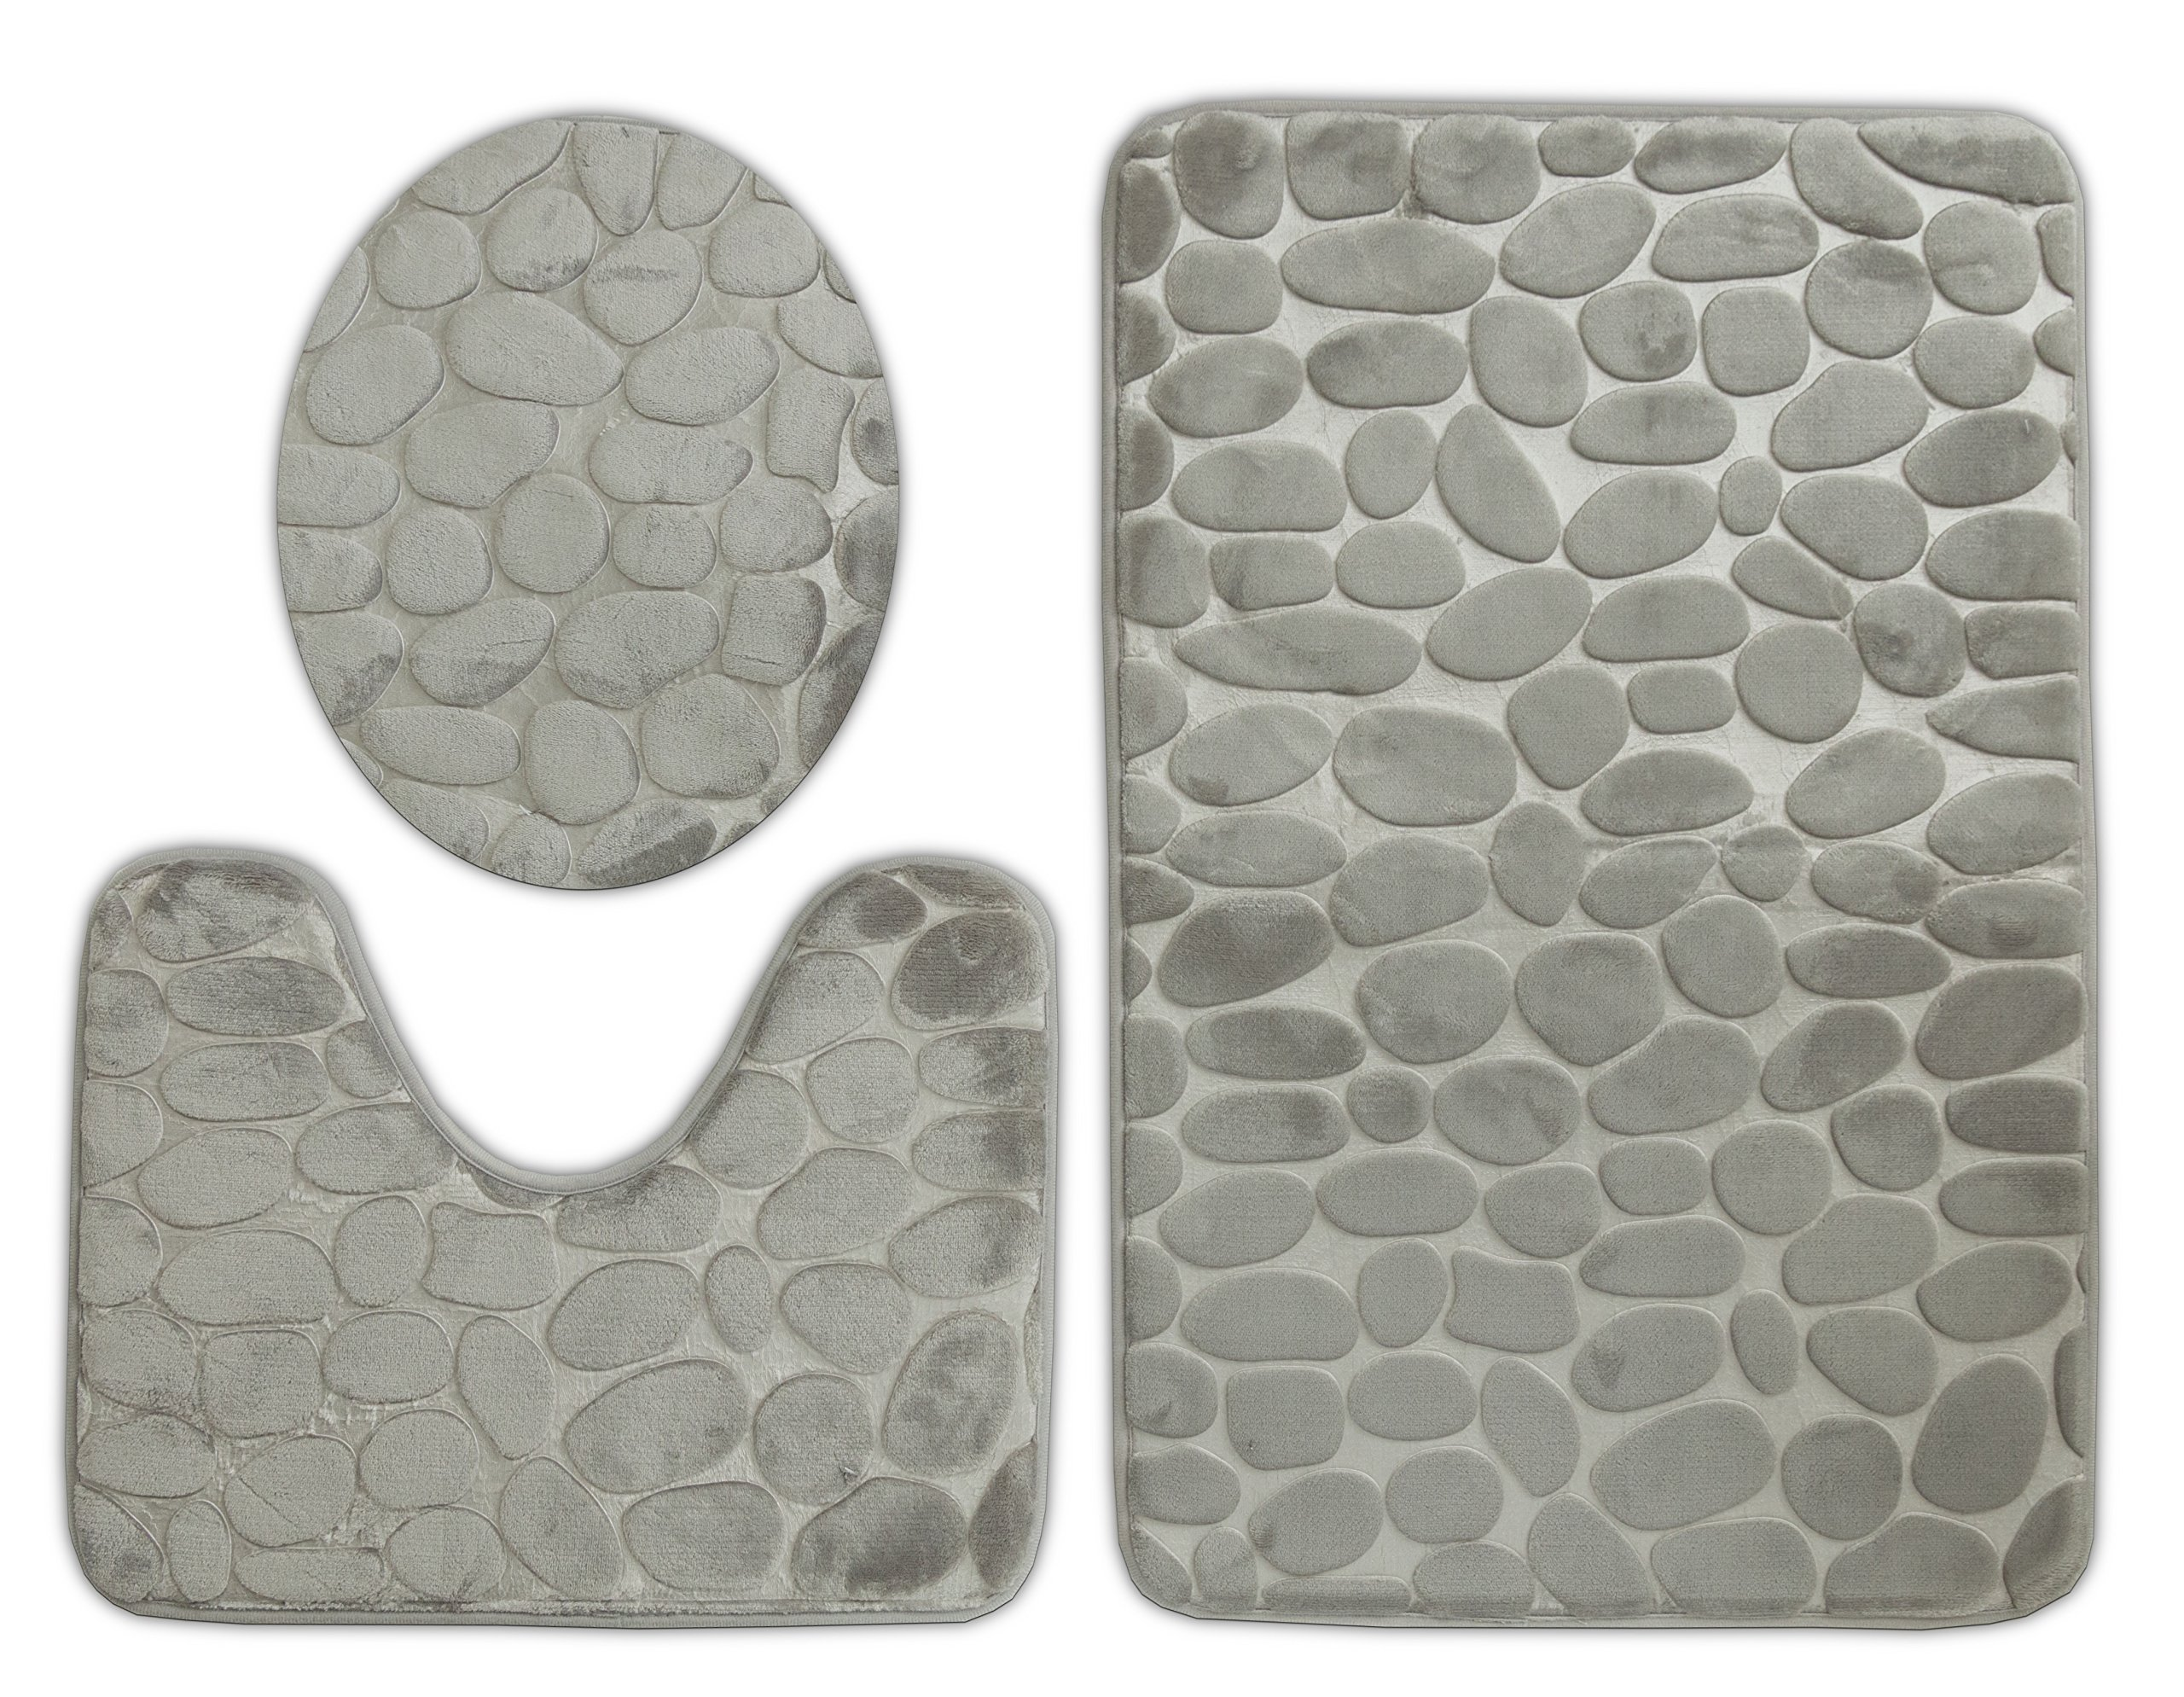 Elegant Home 3 Piece Solid Color Rock Embossed Memory Foam Bathroom Rug Set Bath Rug, Contour Mat, Lid Cover Non-Slip With Rubber Backing # New Rock (Grey)